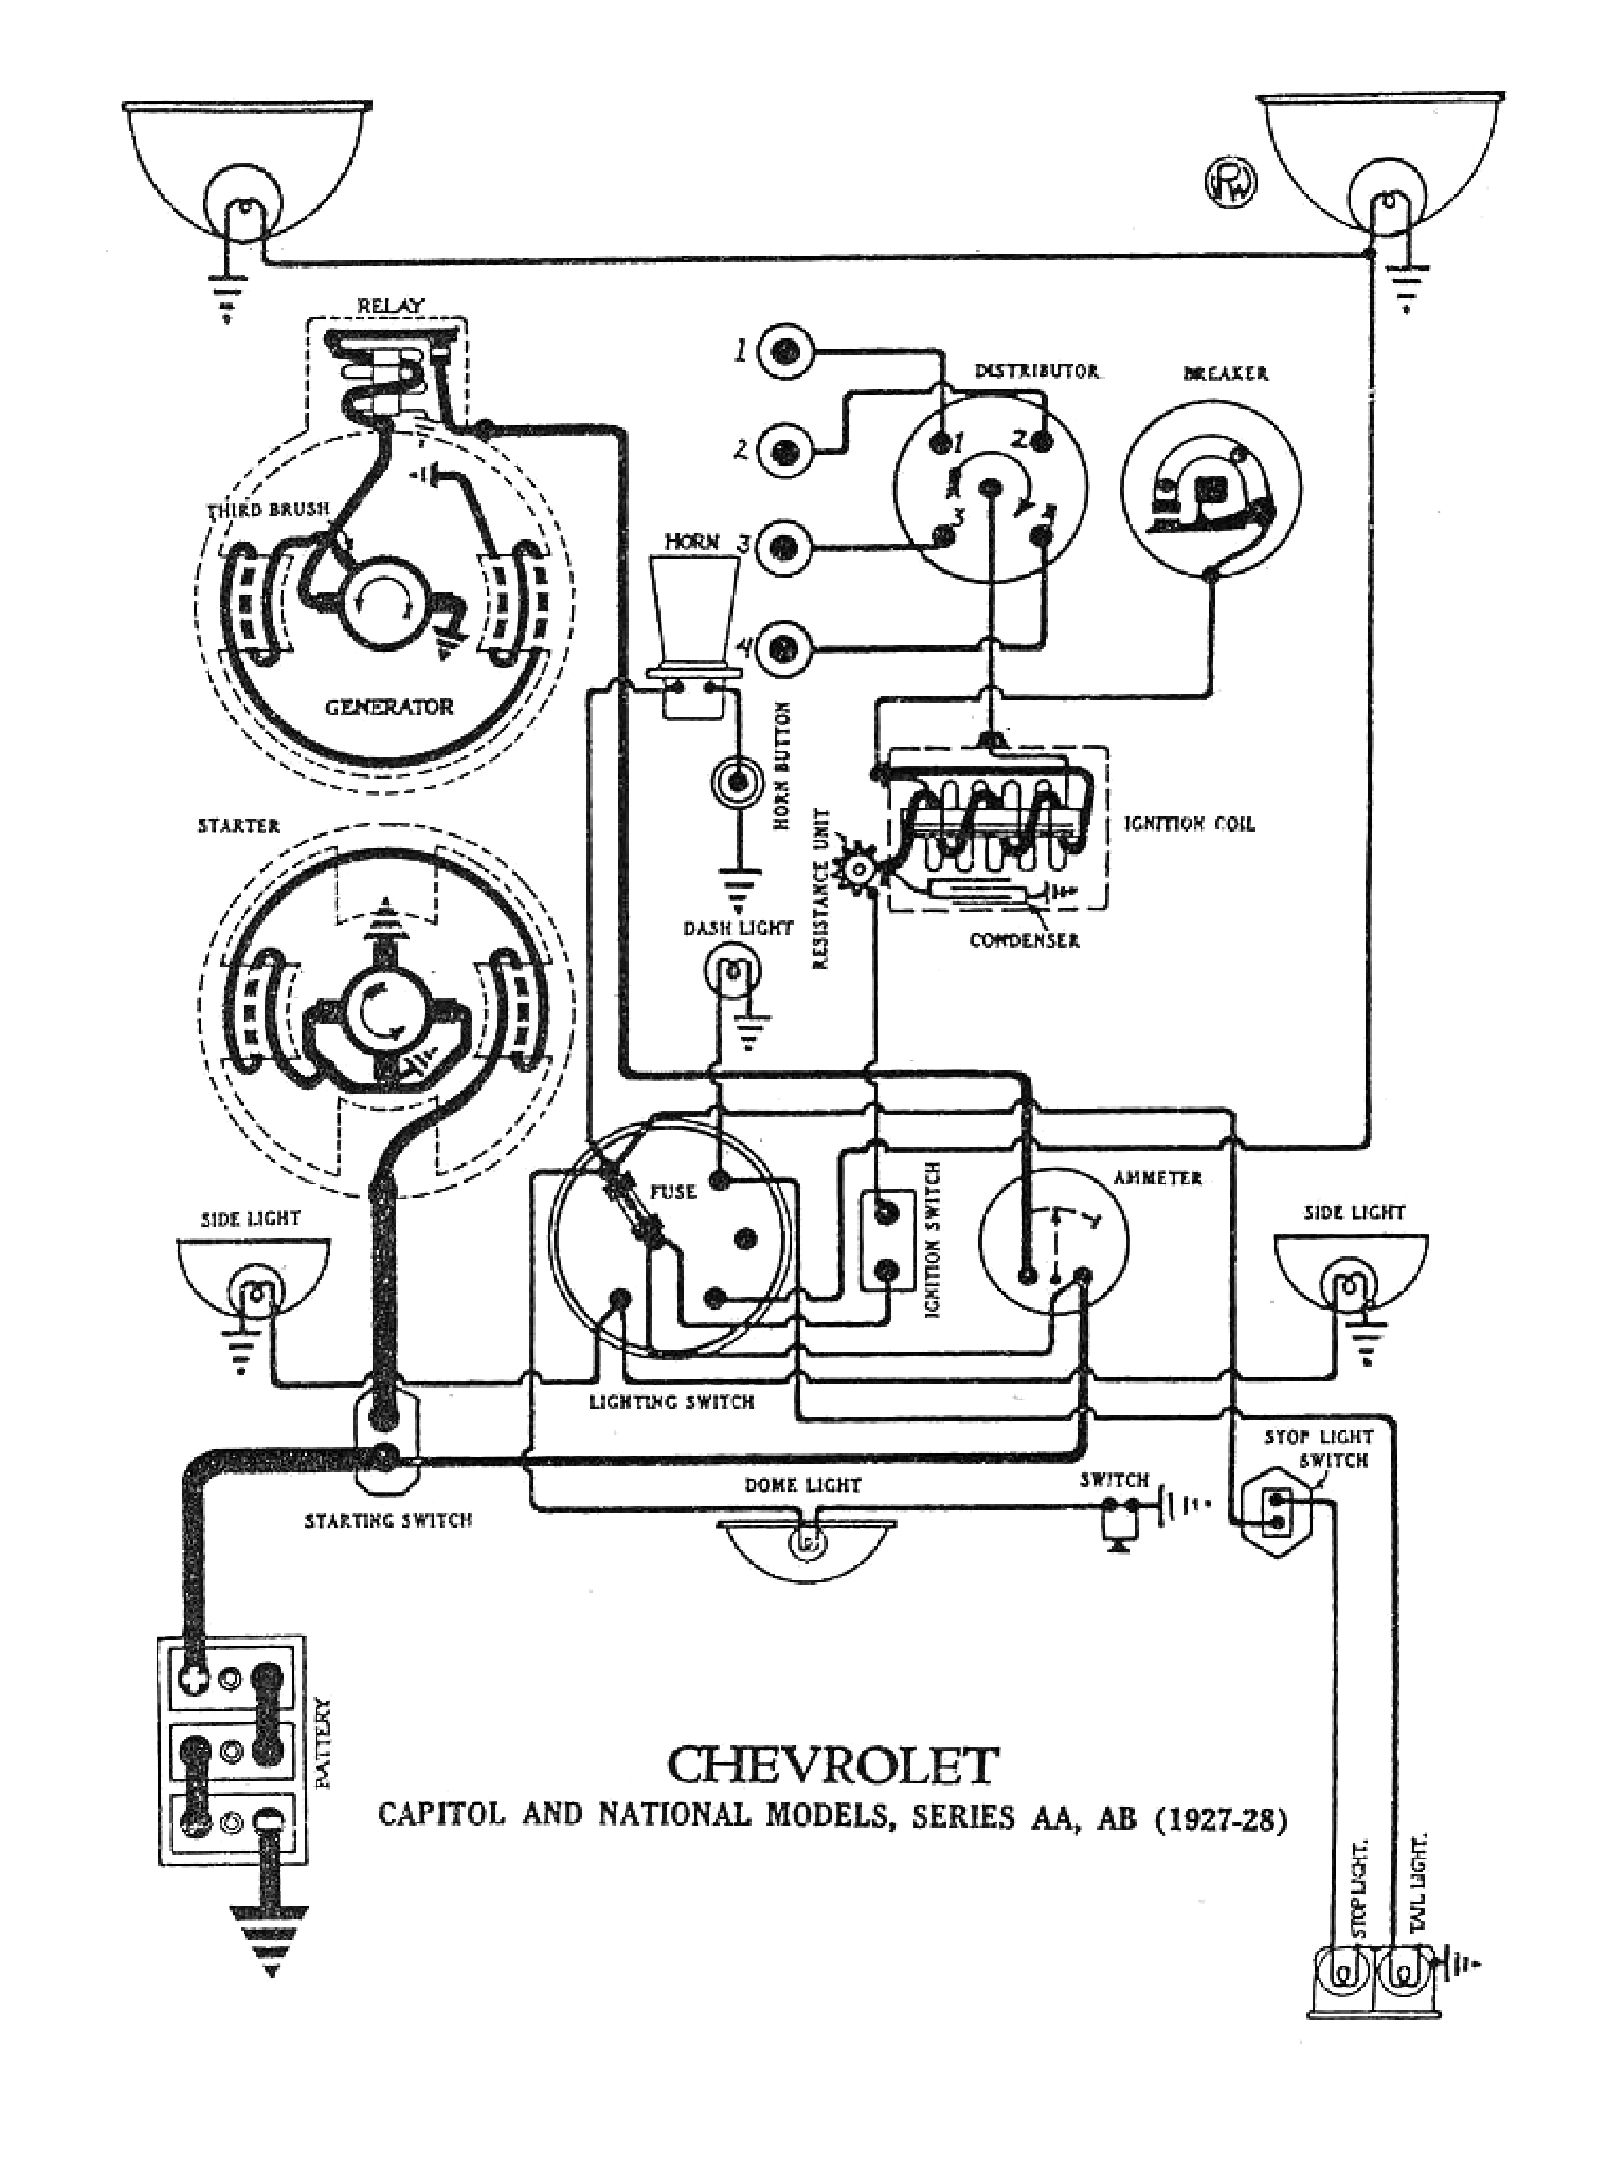 2728wiring chevy wiring diagrams ford model a wiring harness at edmiracle.co